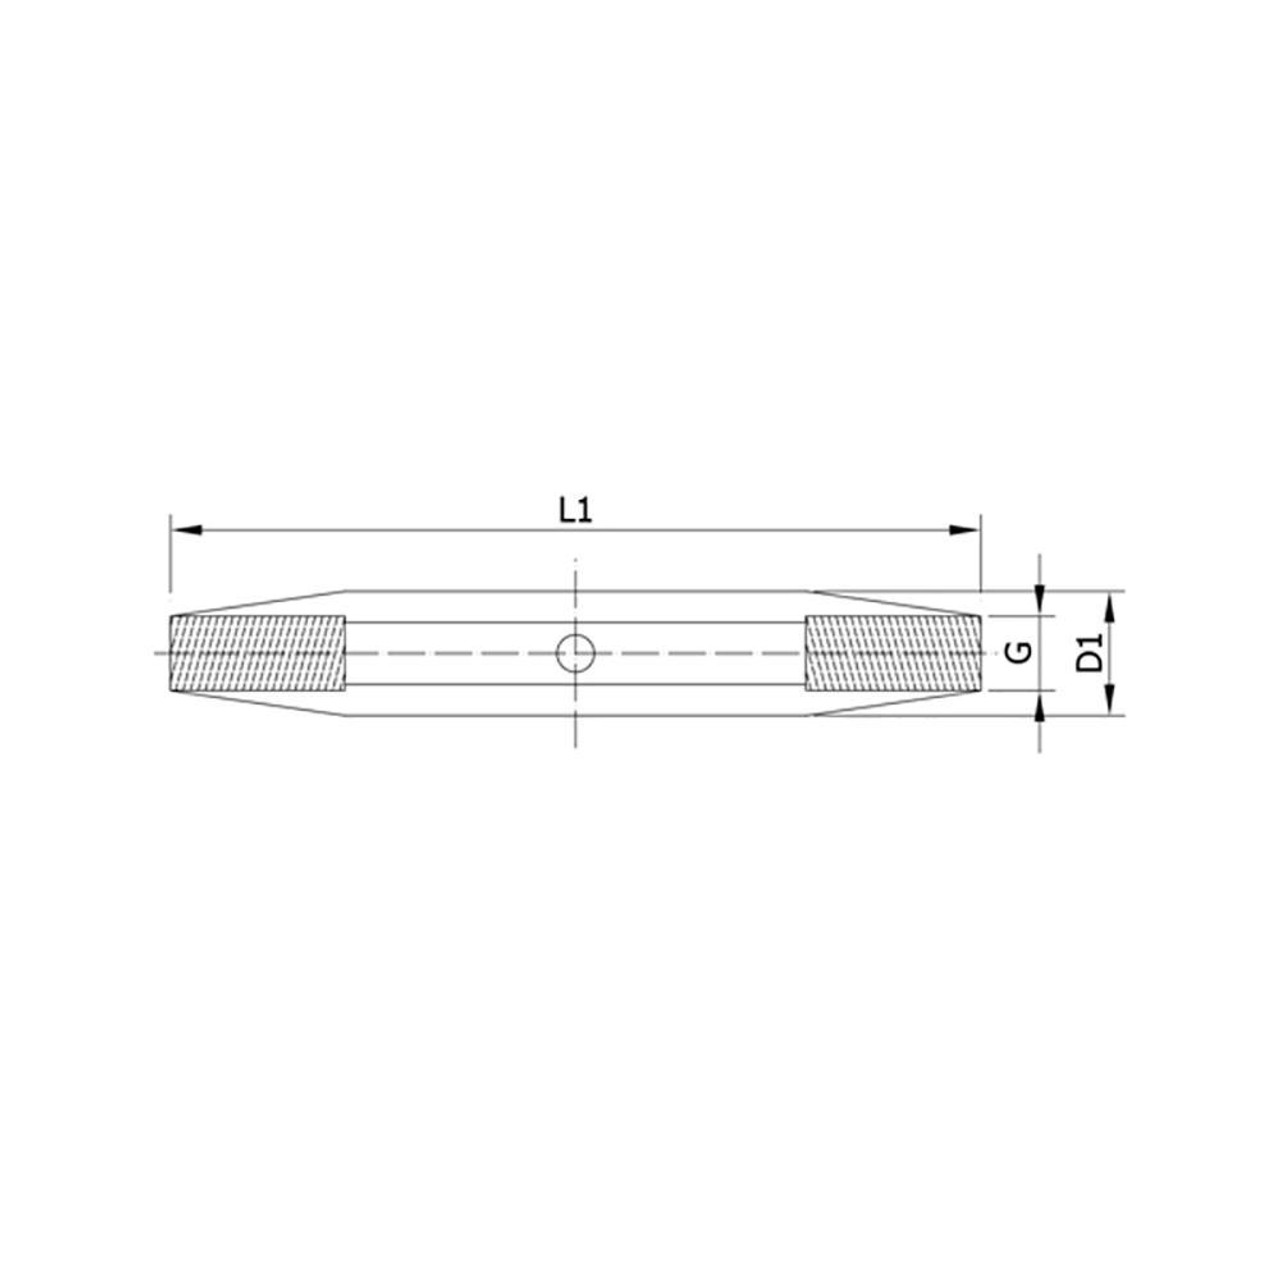 Middle-Tensioning Body (CADD)